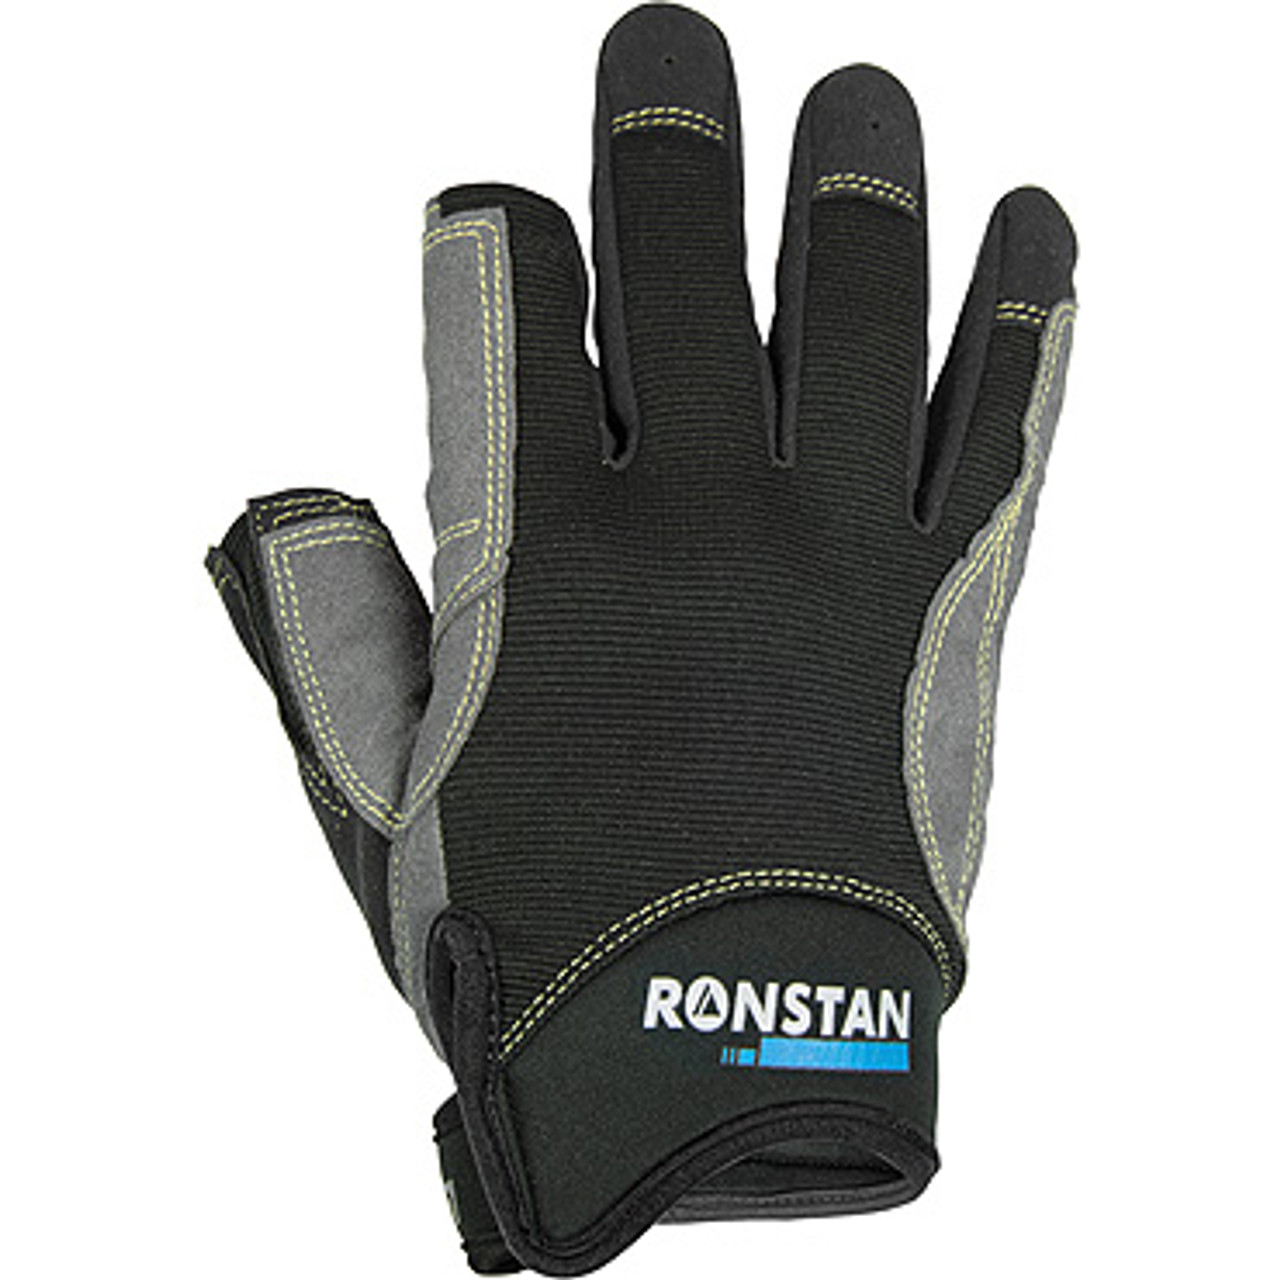 Gloves - Ronstan 3 Fingers XSmall